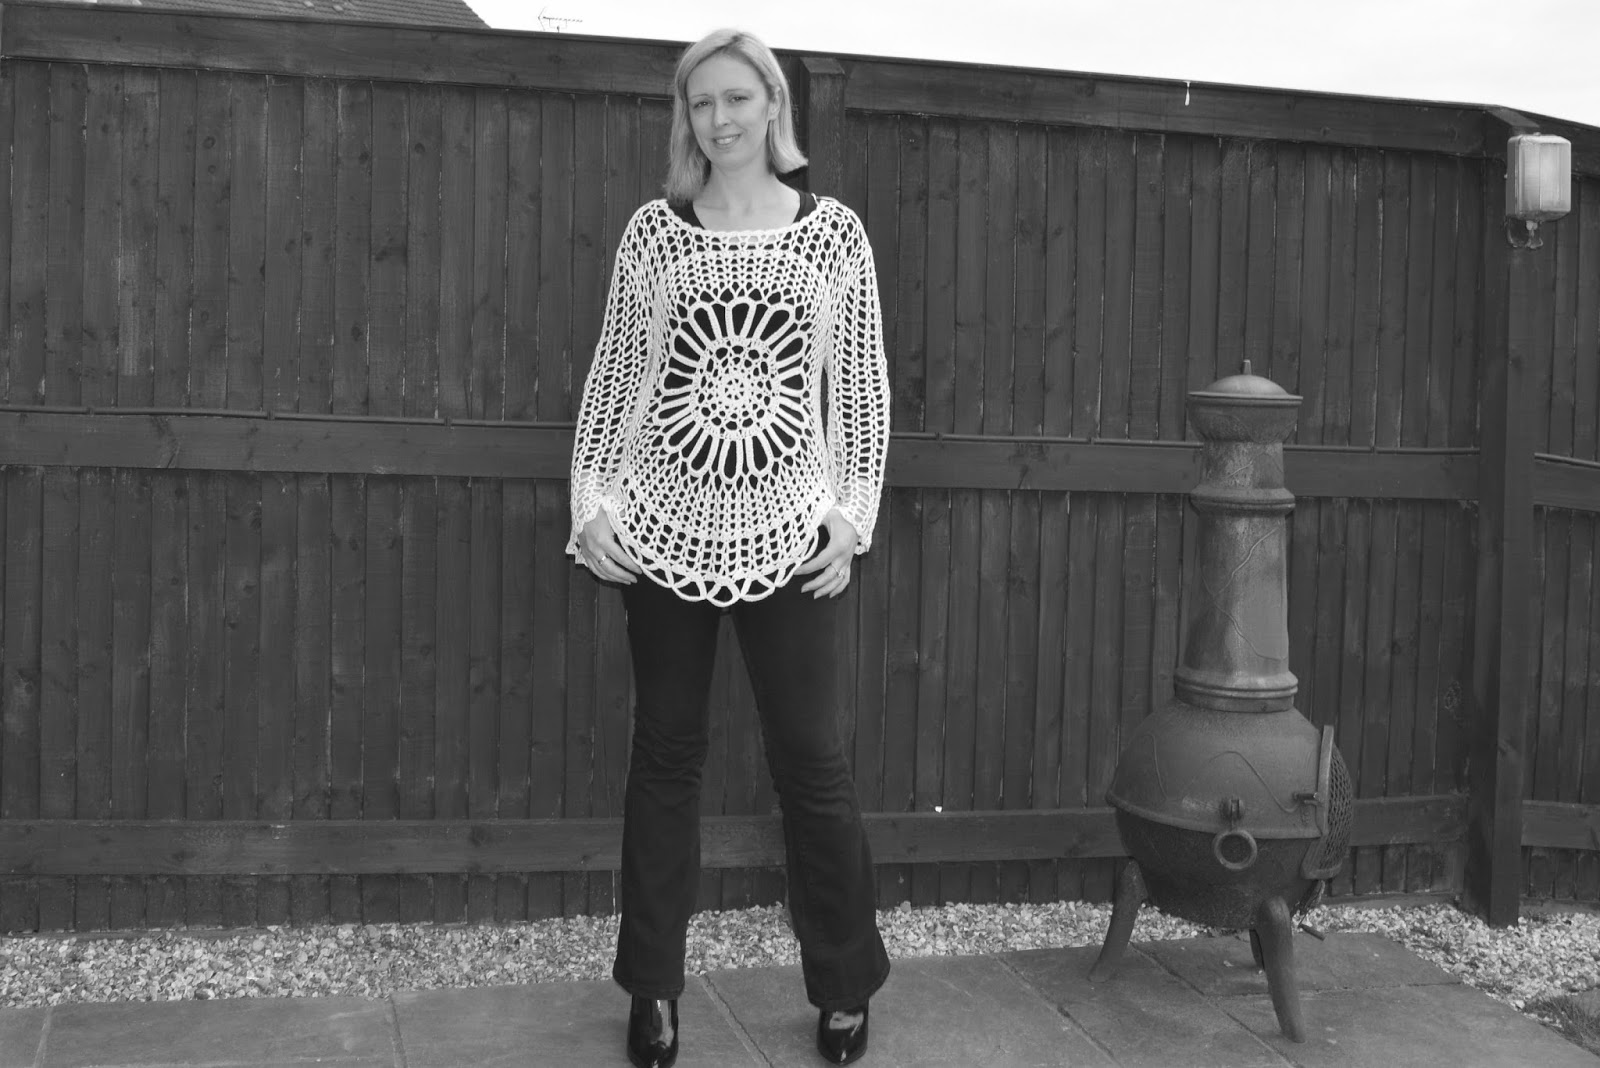 White Lacy Knitted Top, Black Jeans And Heeled Boots